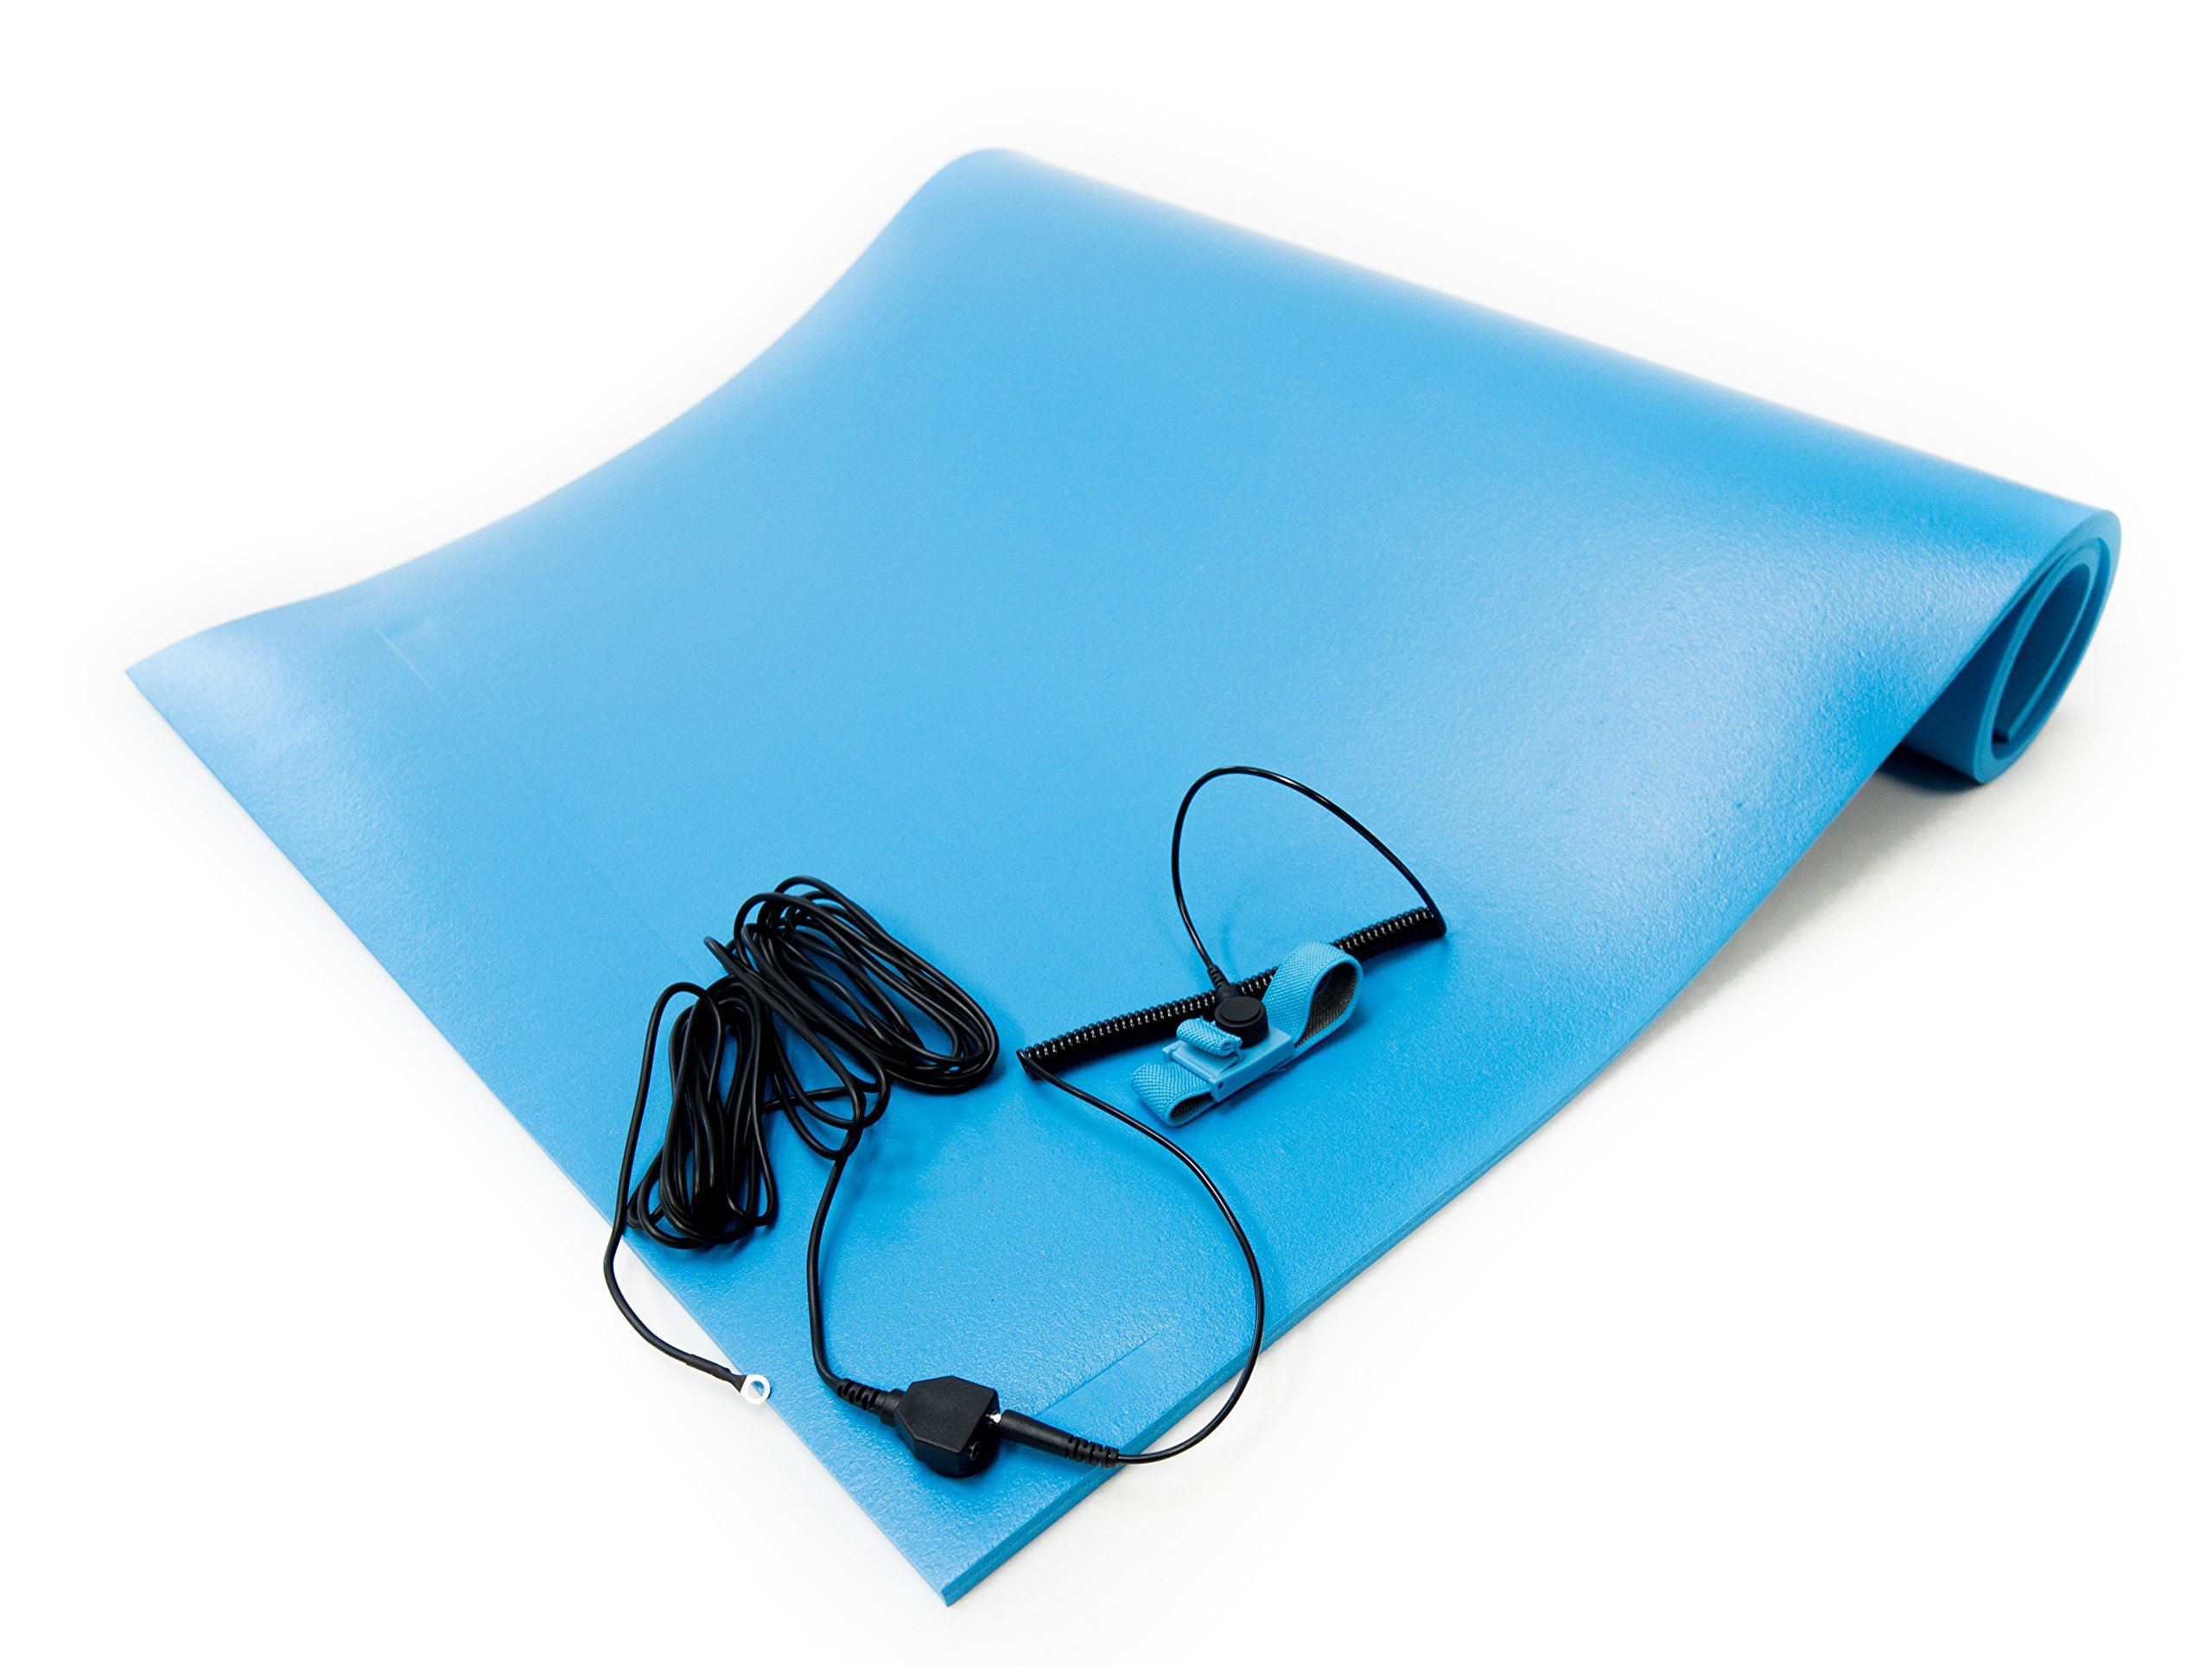 Bertech ESD Foam Mat Kit with a Wrist Strap and Grounding Cord, 3' Wide x 6' Long x 0.375'' Thick, Blue, Made in USA